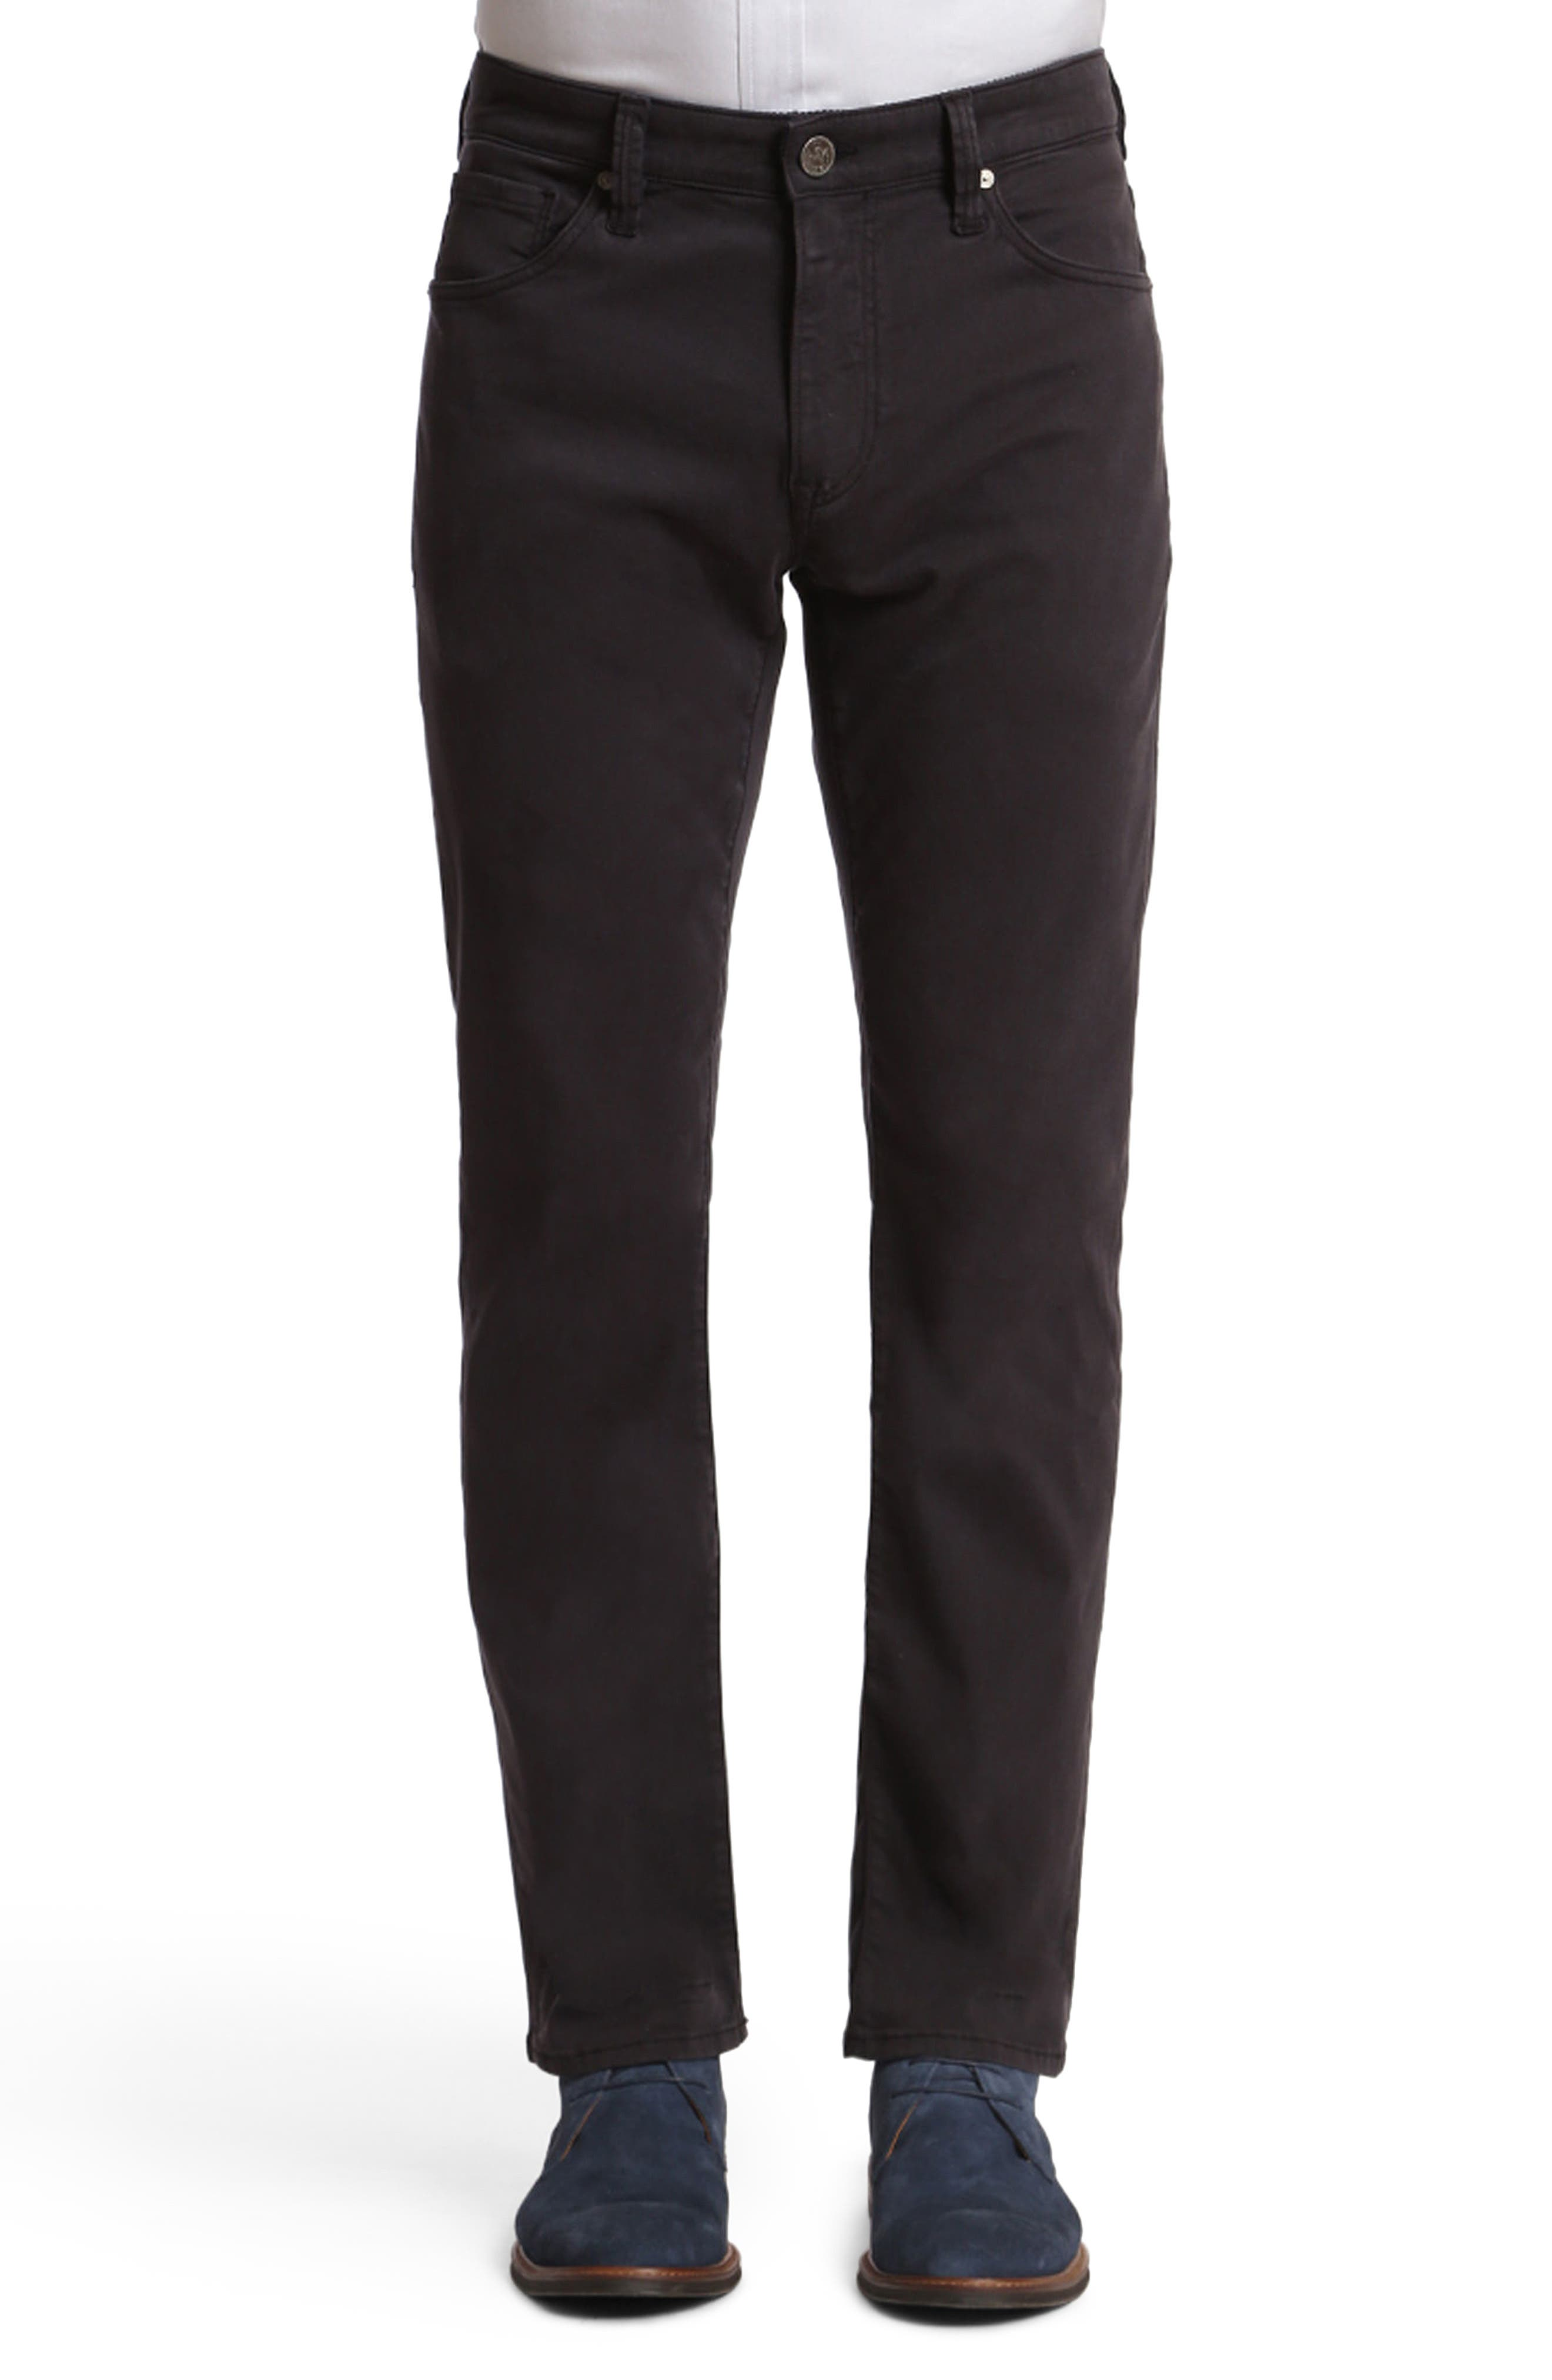 Courage Straight Leg Twill Pants,                             Main thumbnail 1, color,                             BLUE-GREY TWILL